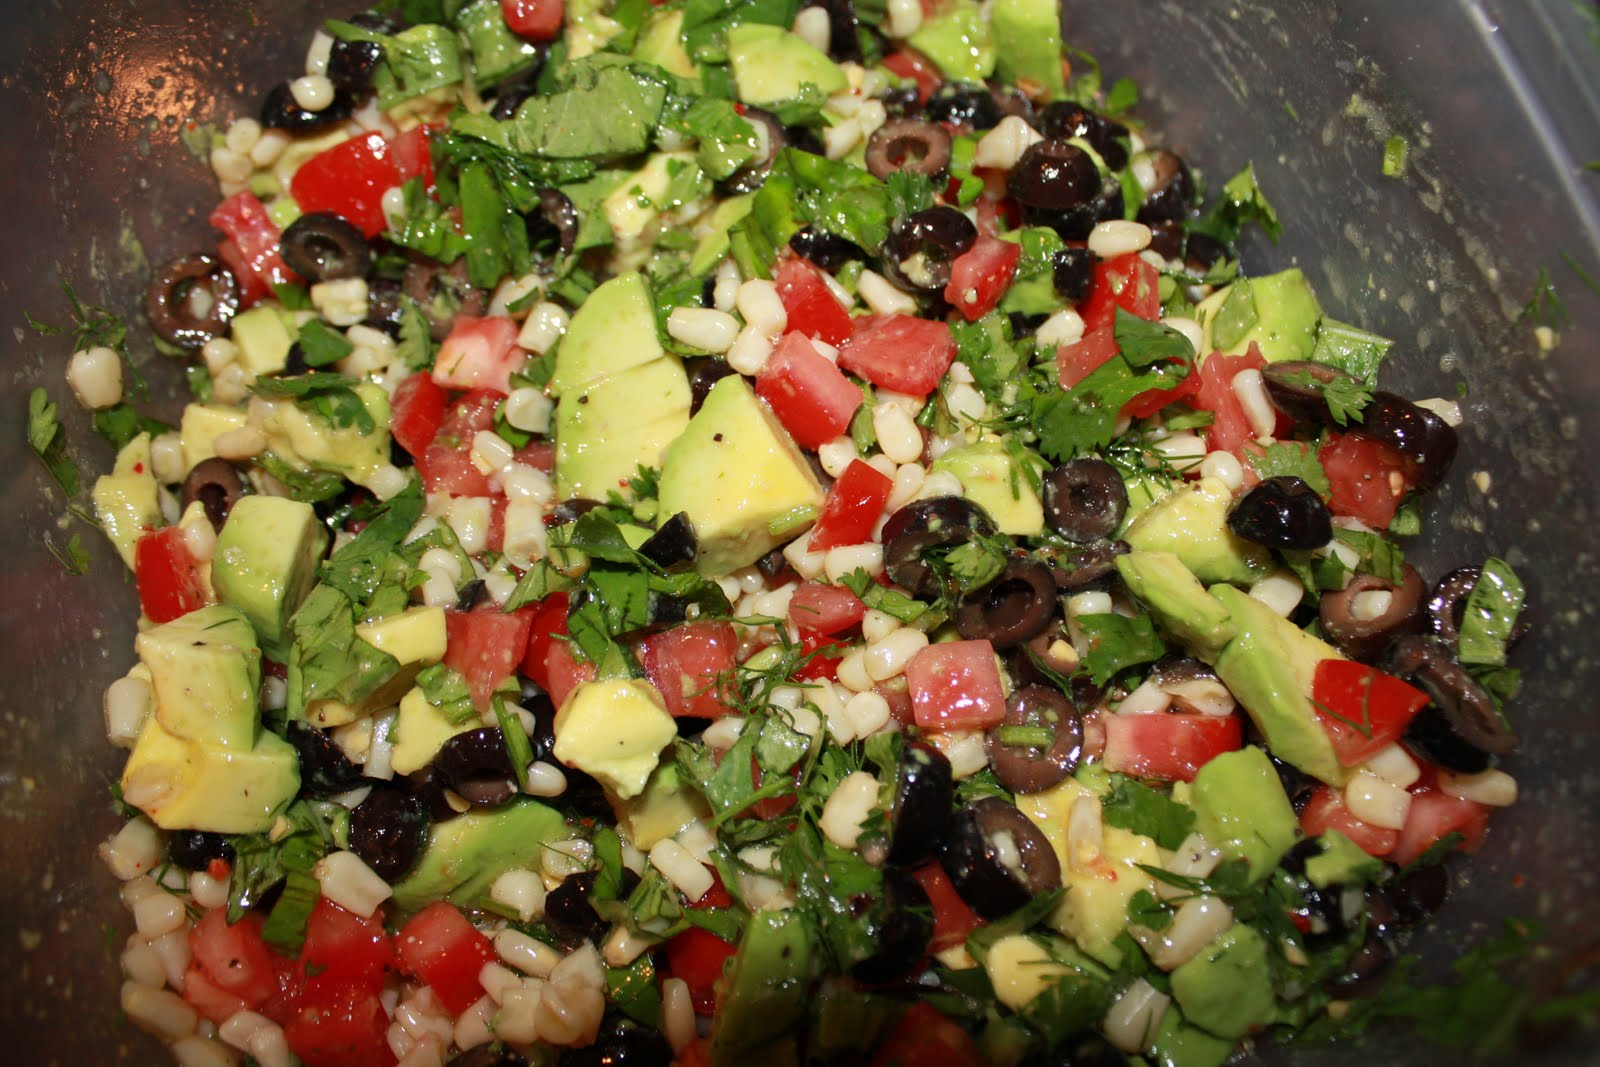 call it texas caviar texas caviar i texas caviar avocado you decide to ...